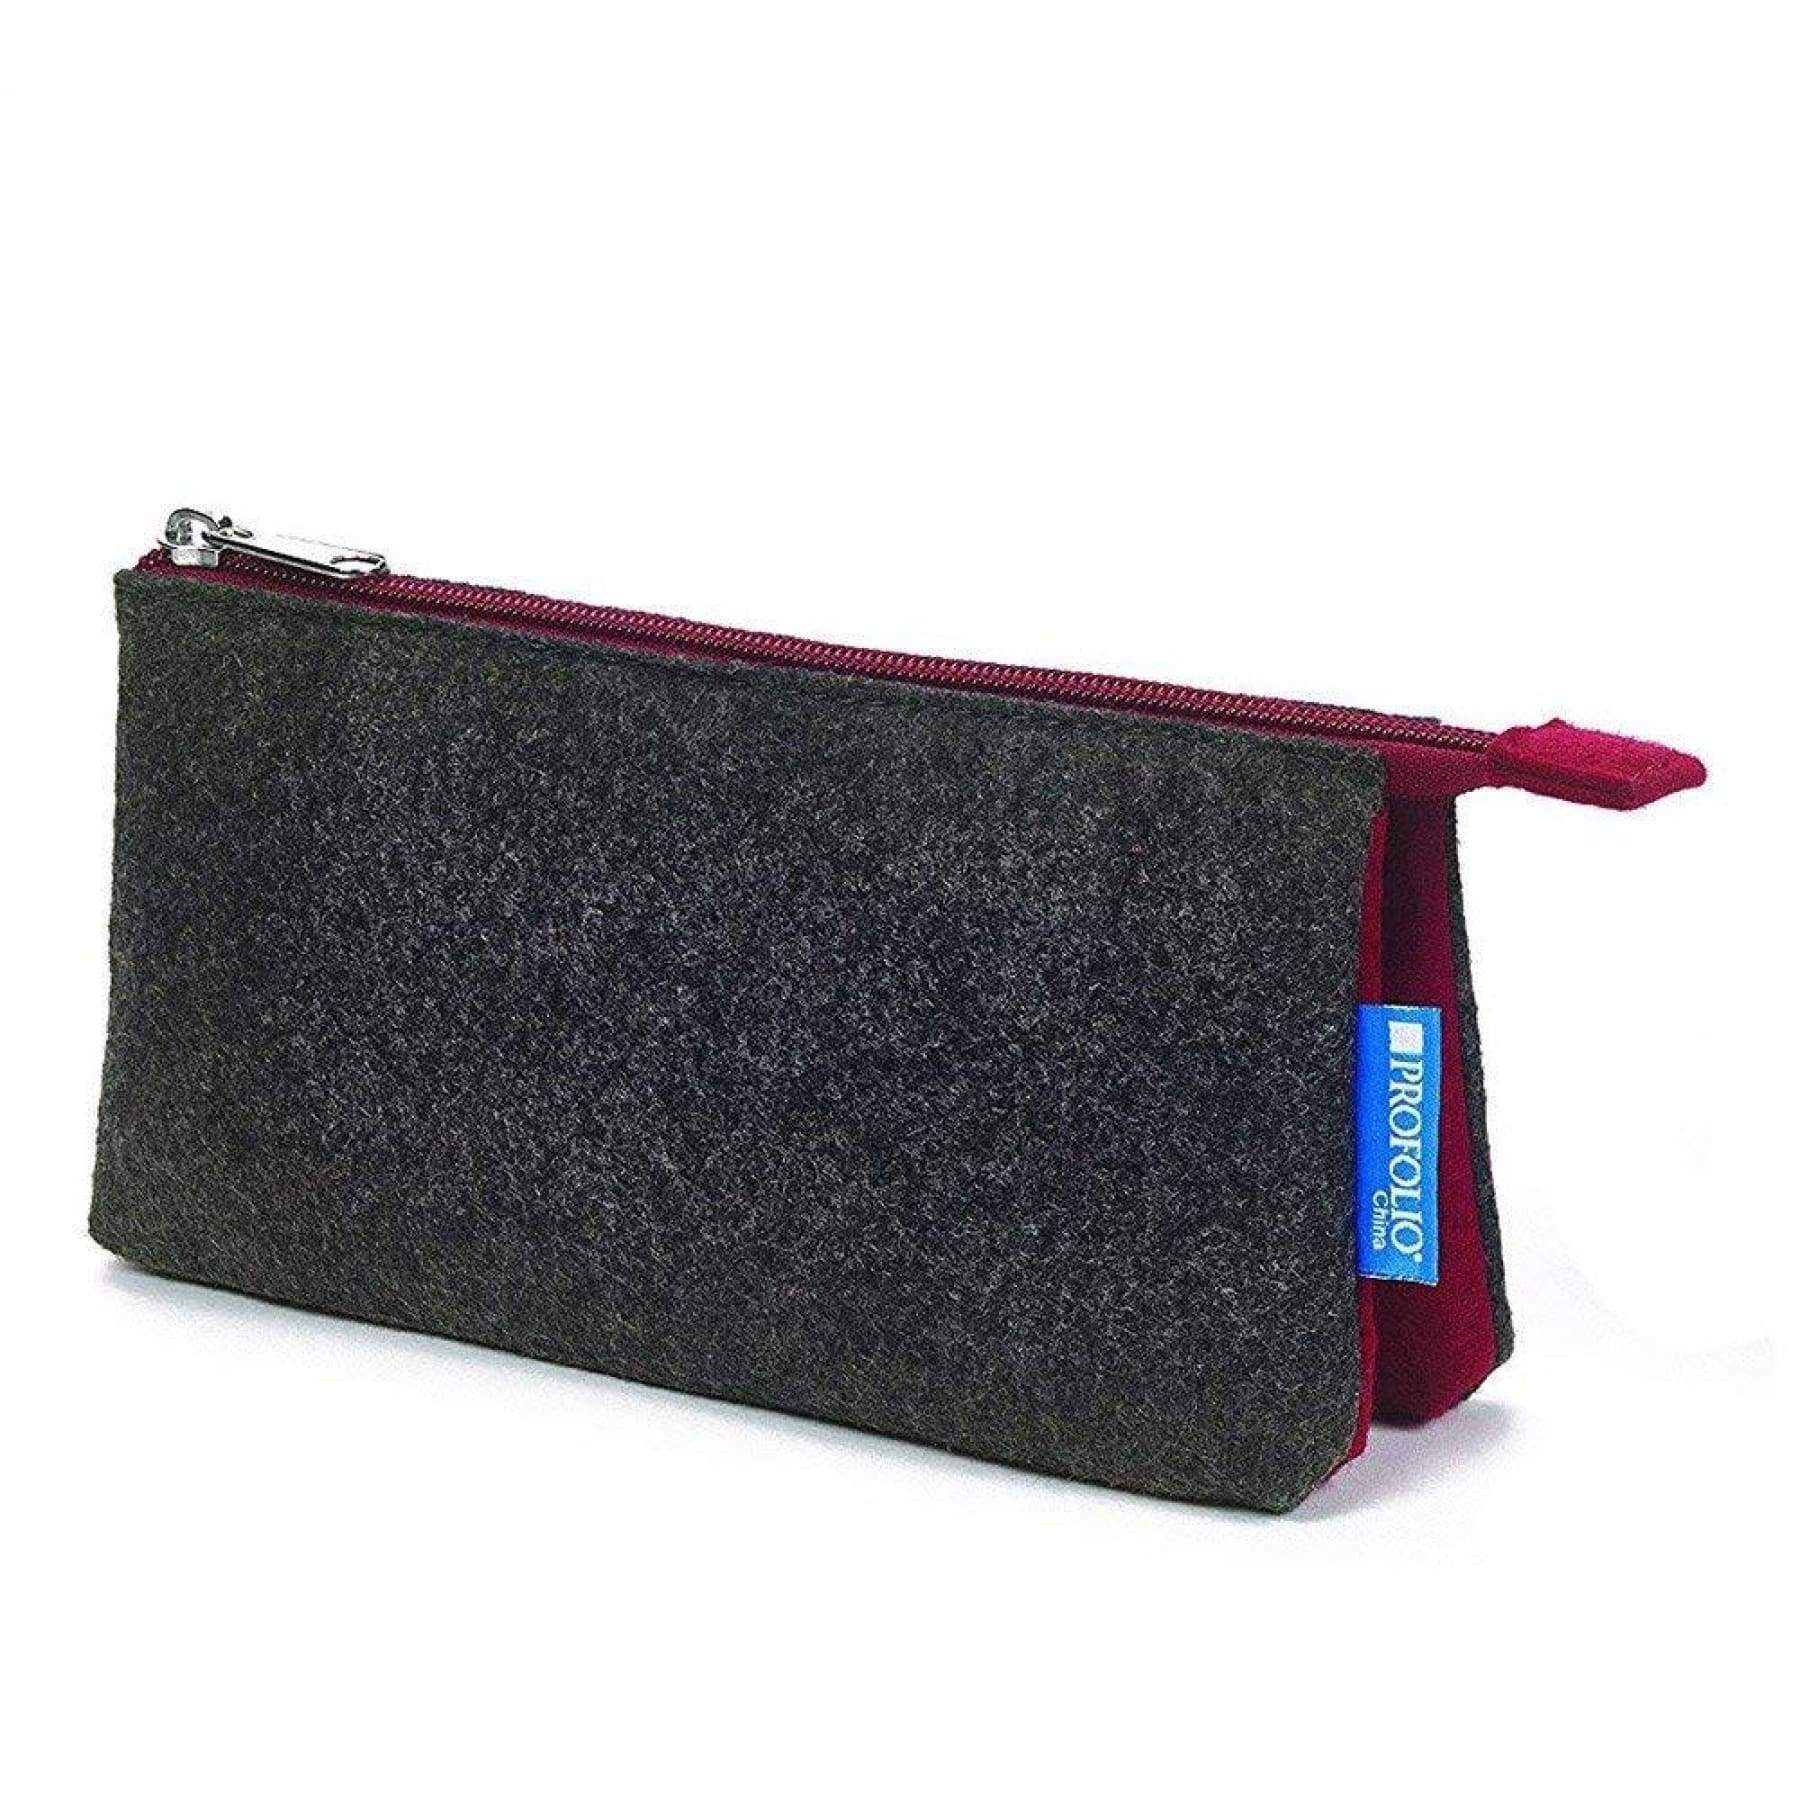 Midtown Felt Pouch Charcoal/Maroon 4x7